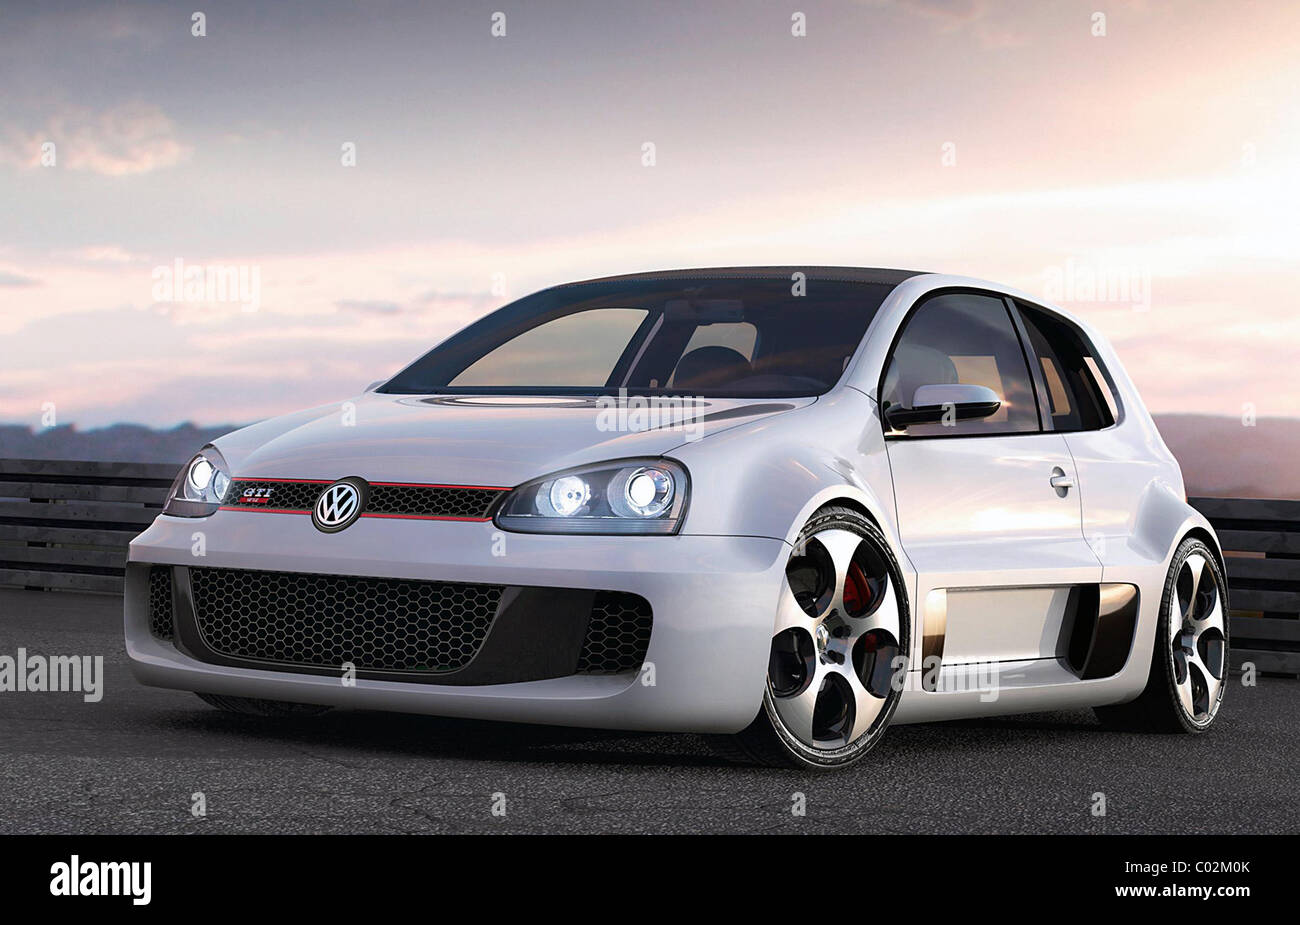 VW Golf GTI W12 concept Volkswagen has got out a stunning car in ...